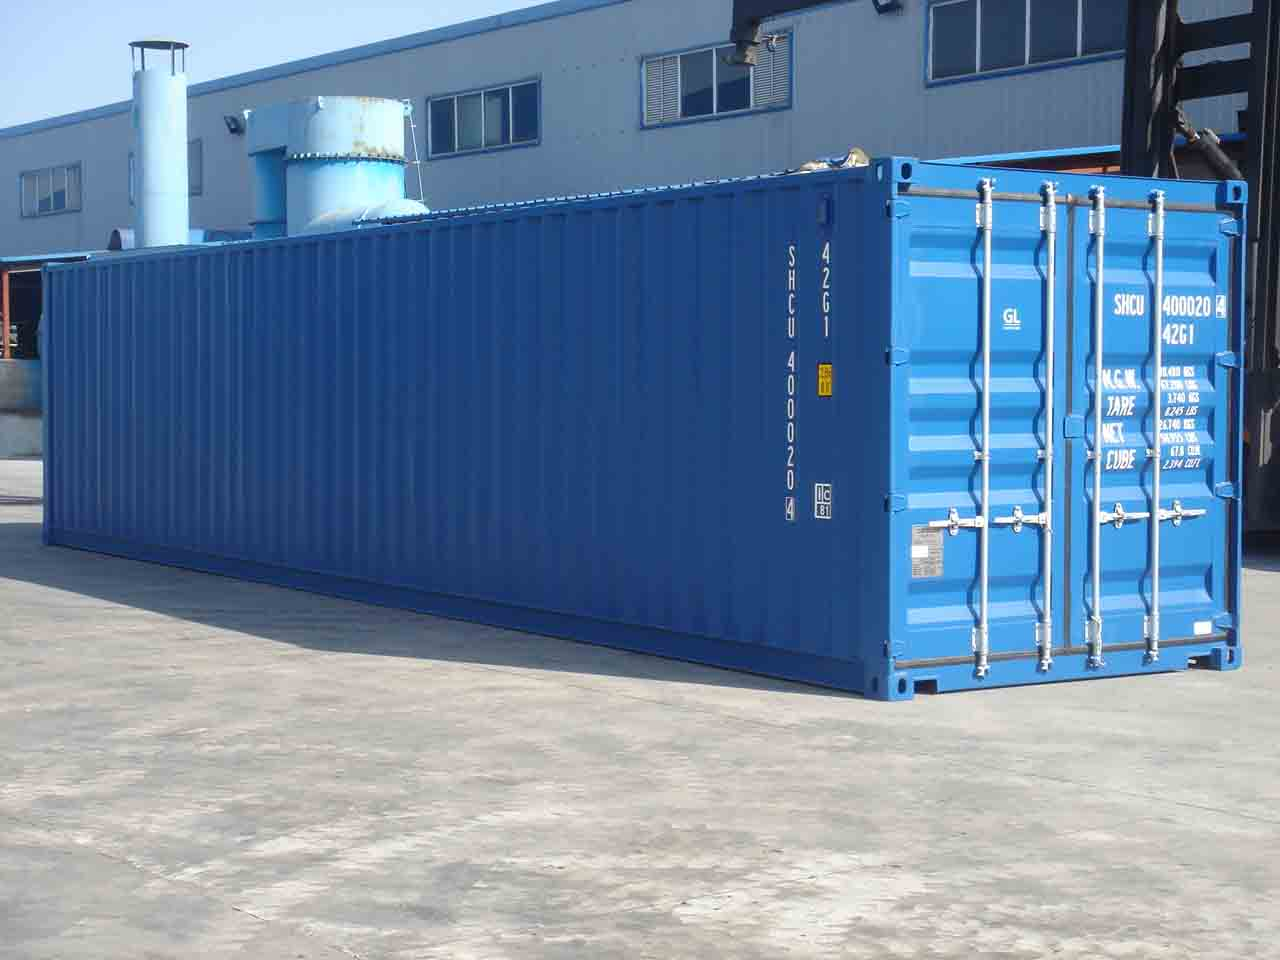 Ampla Containers DRY basico